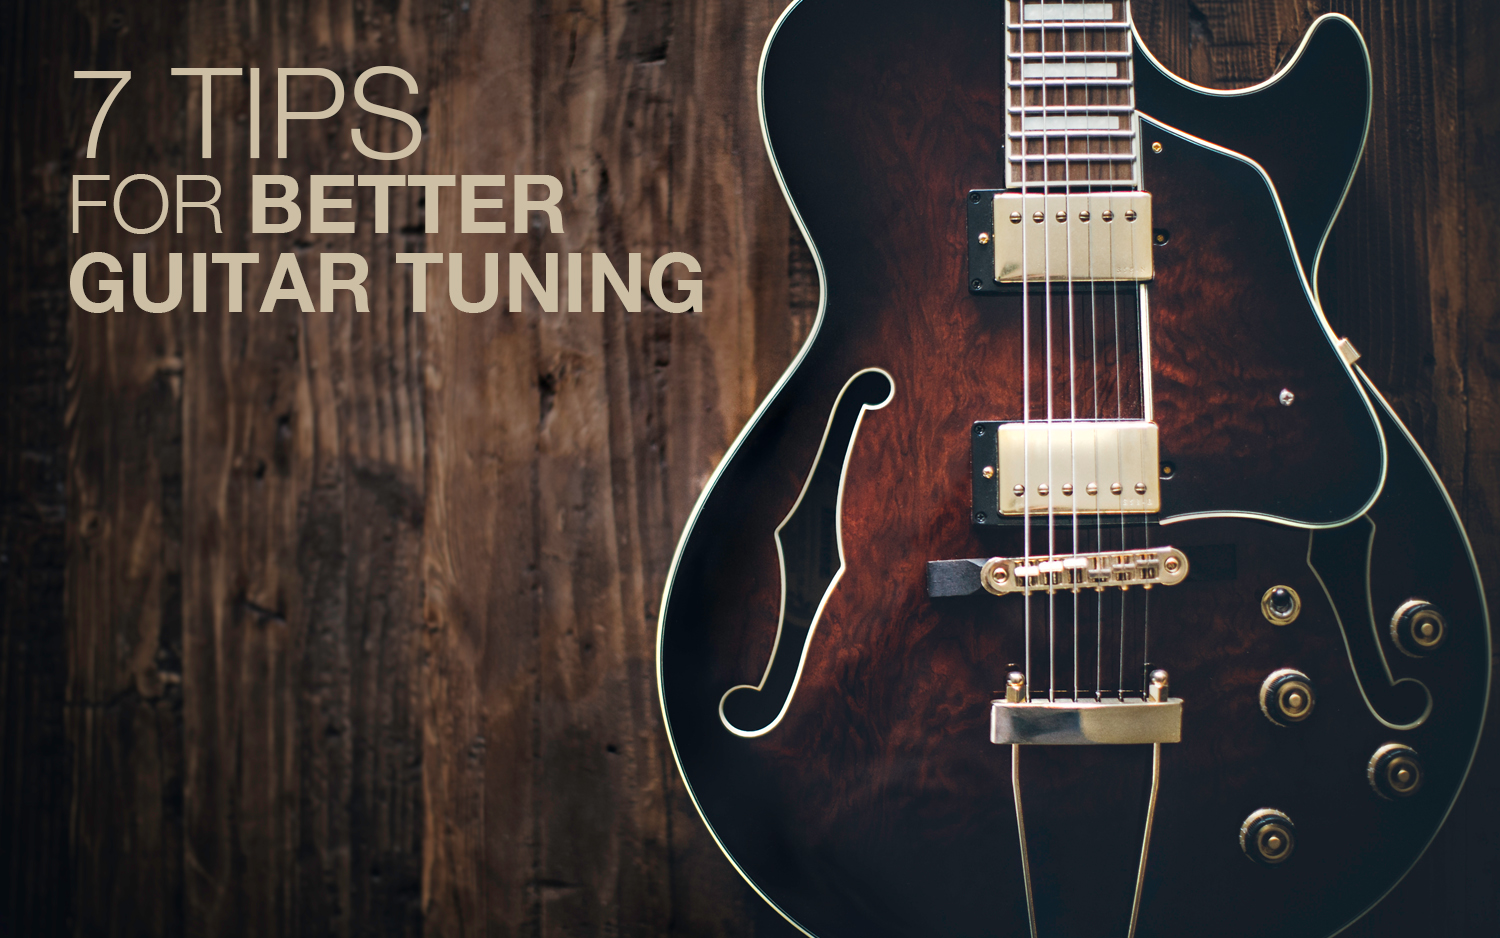 7 Tips for Better Guitar Tuning